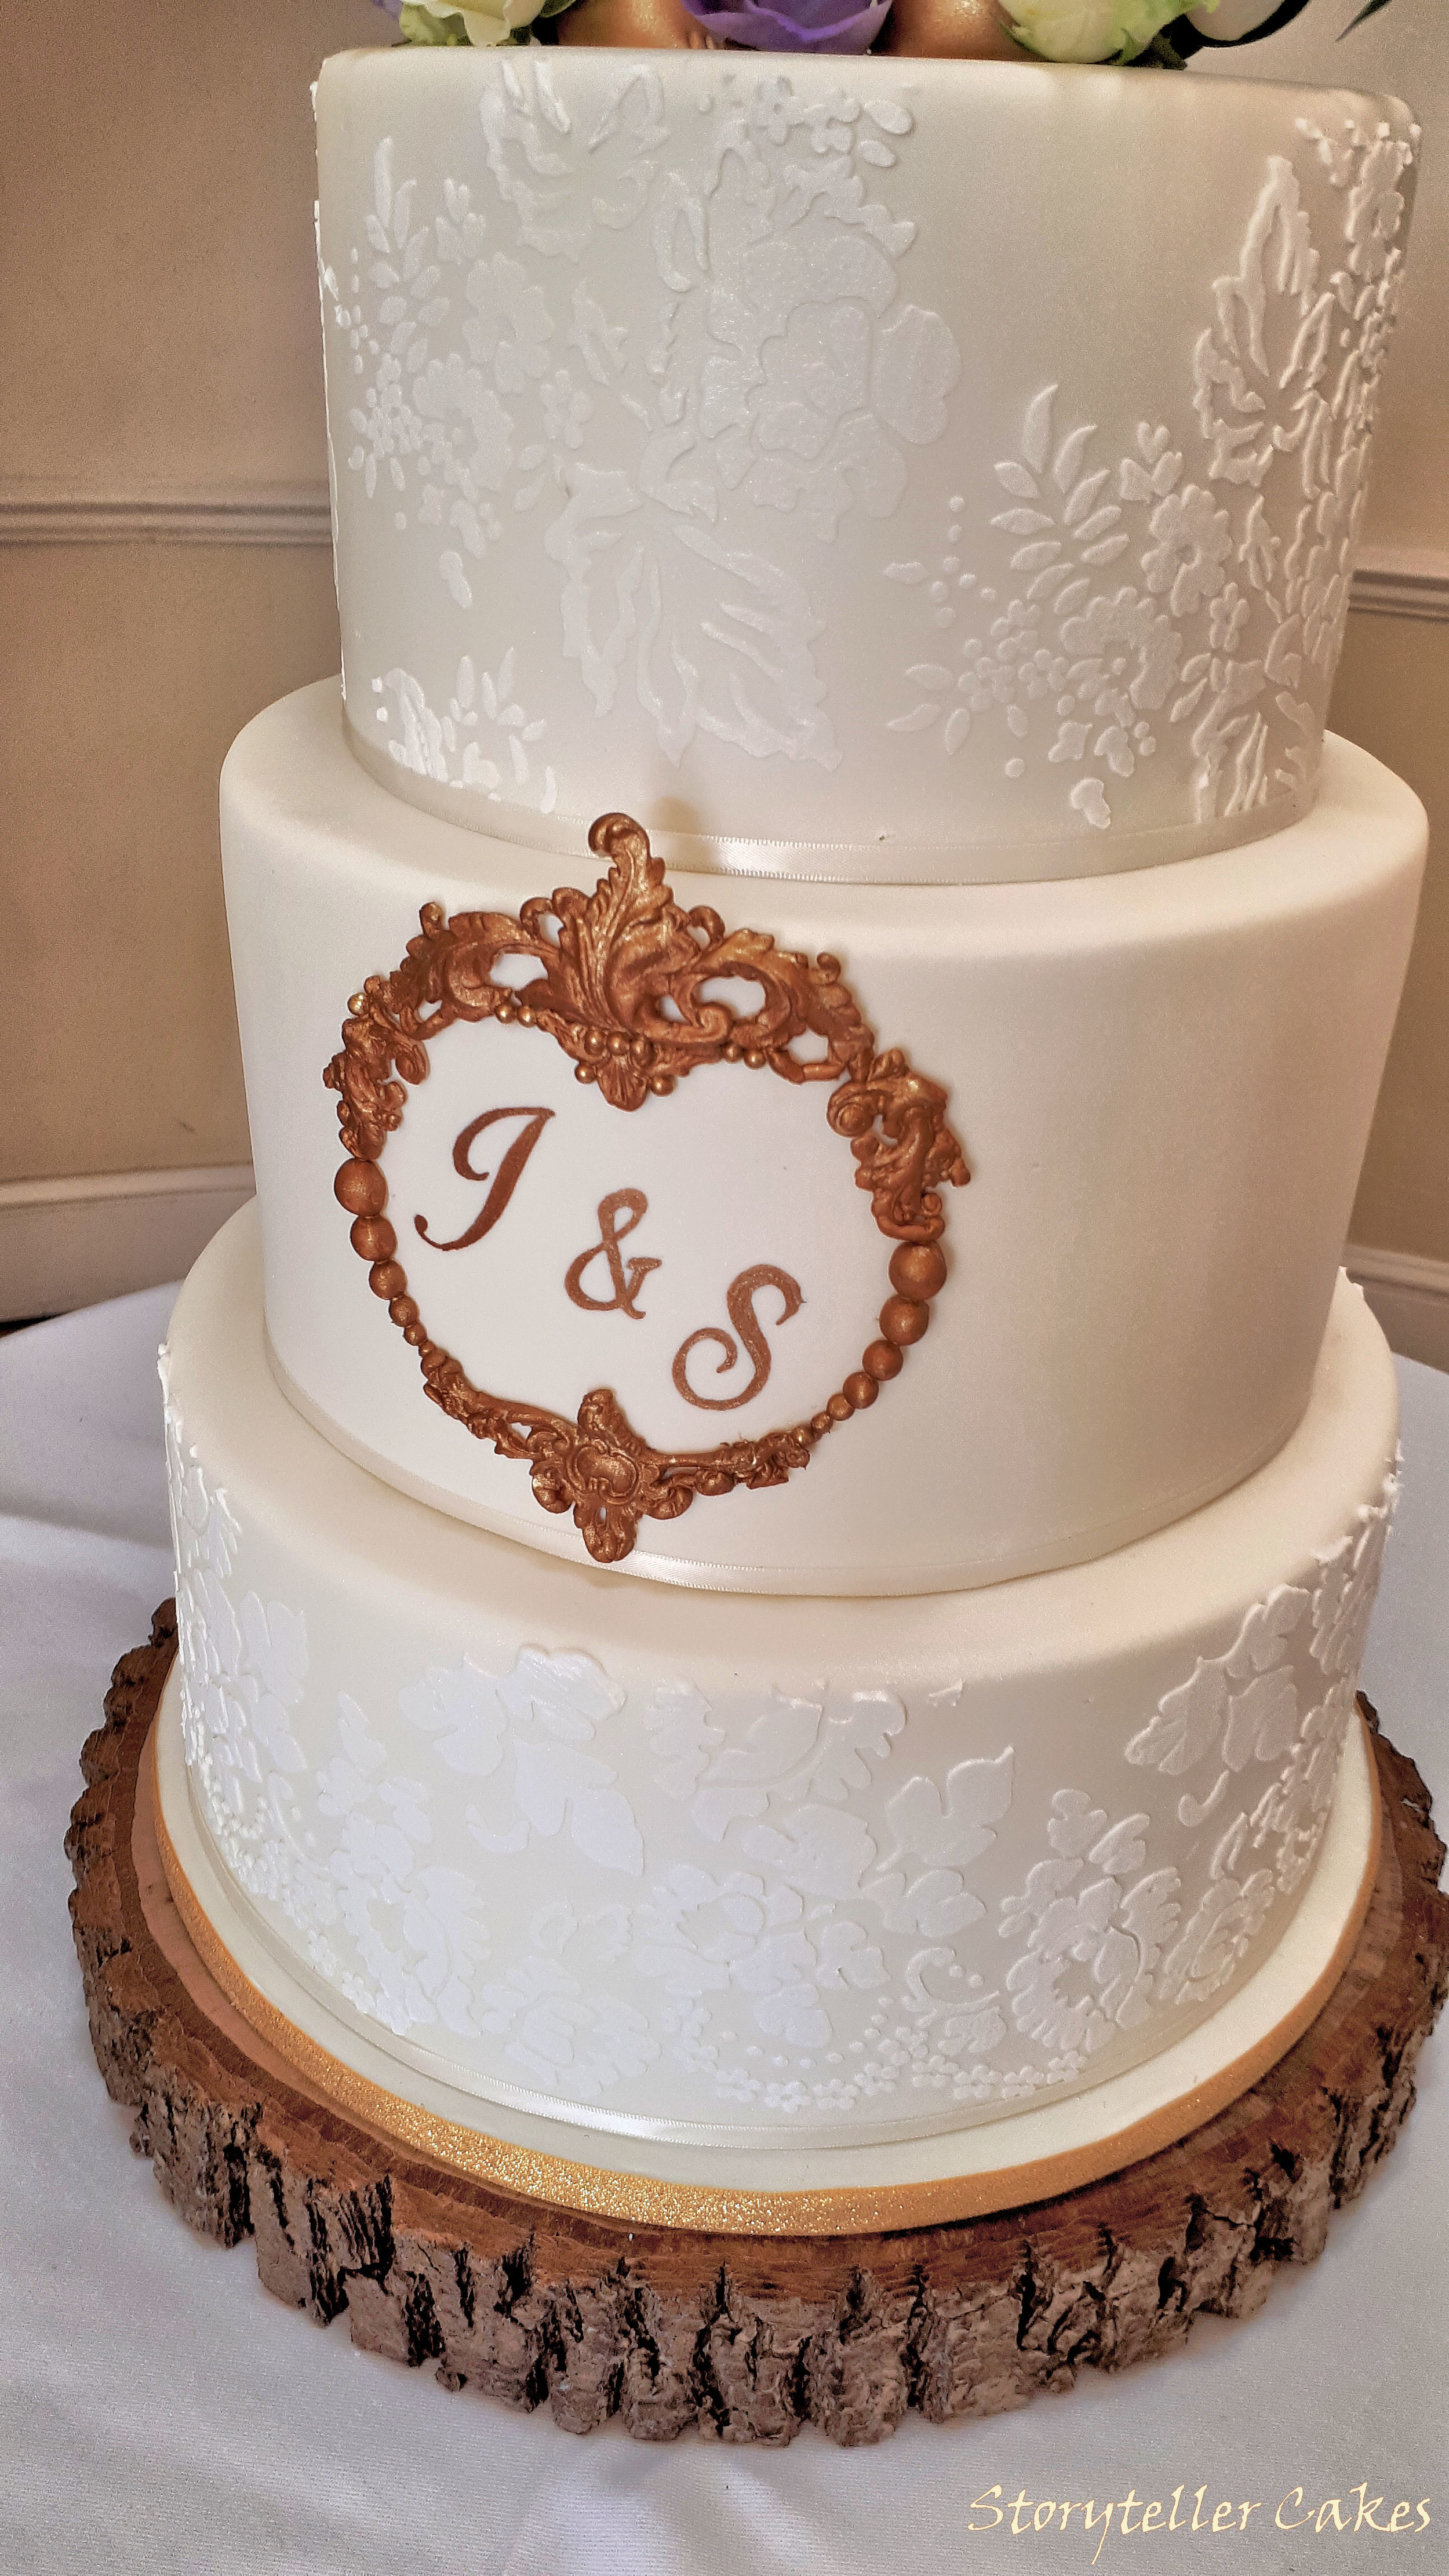 Lace cream and gold pengiun wedding cake3.jpg